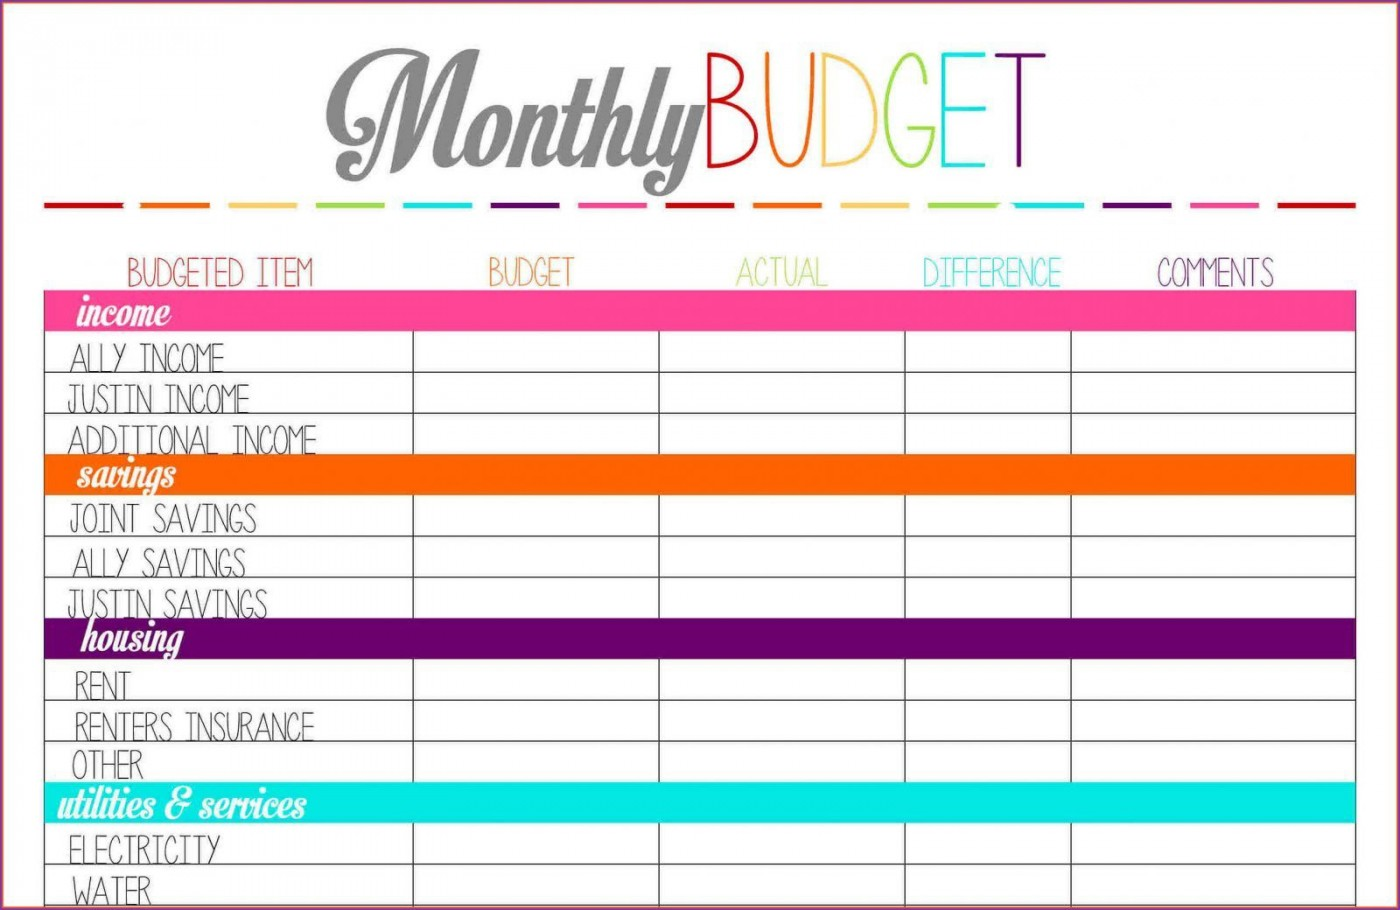 007 Unusual Personal Budget Spreadsheet Template For Mac Highest Clarity 1400